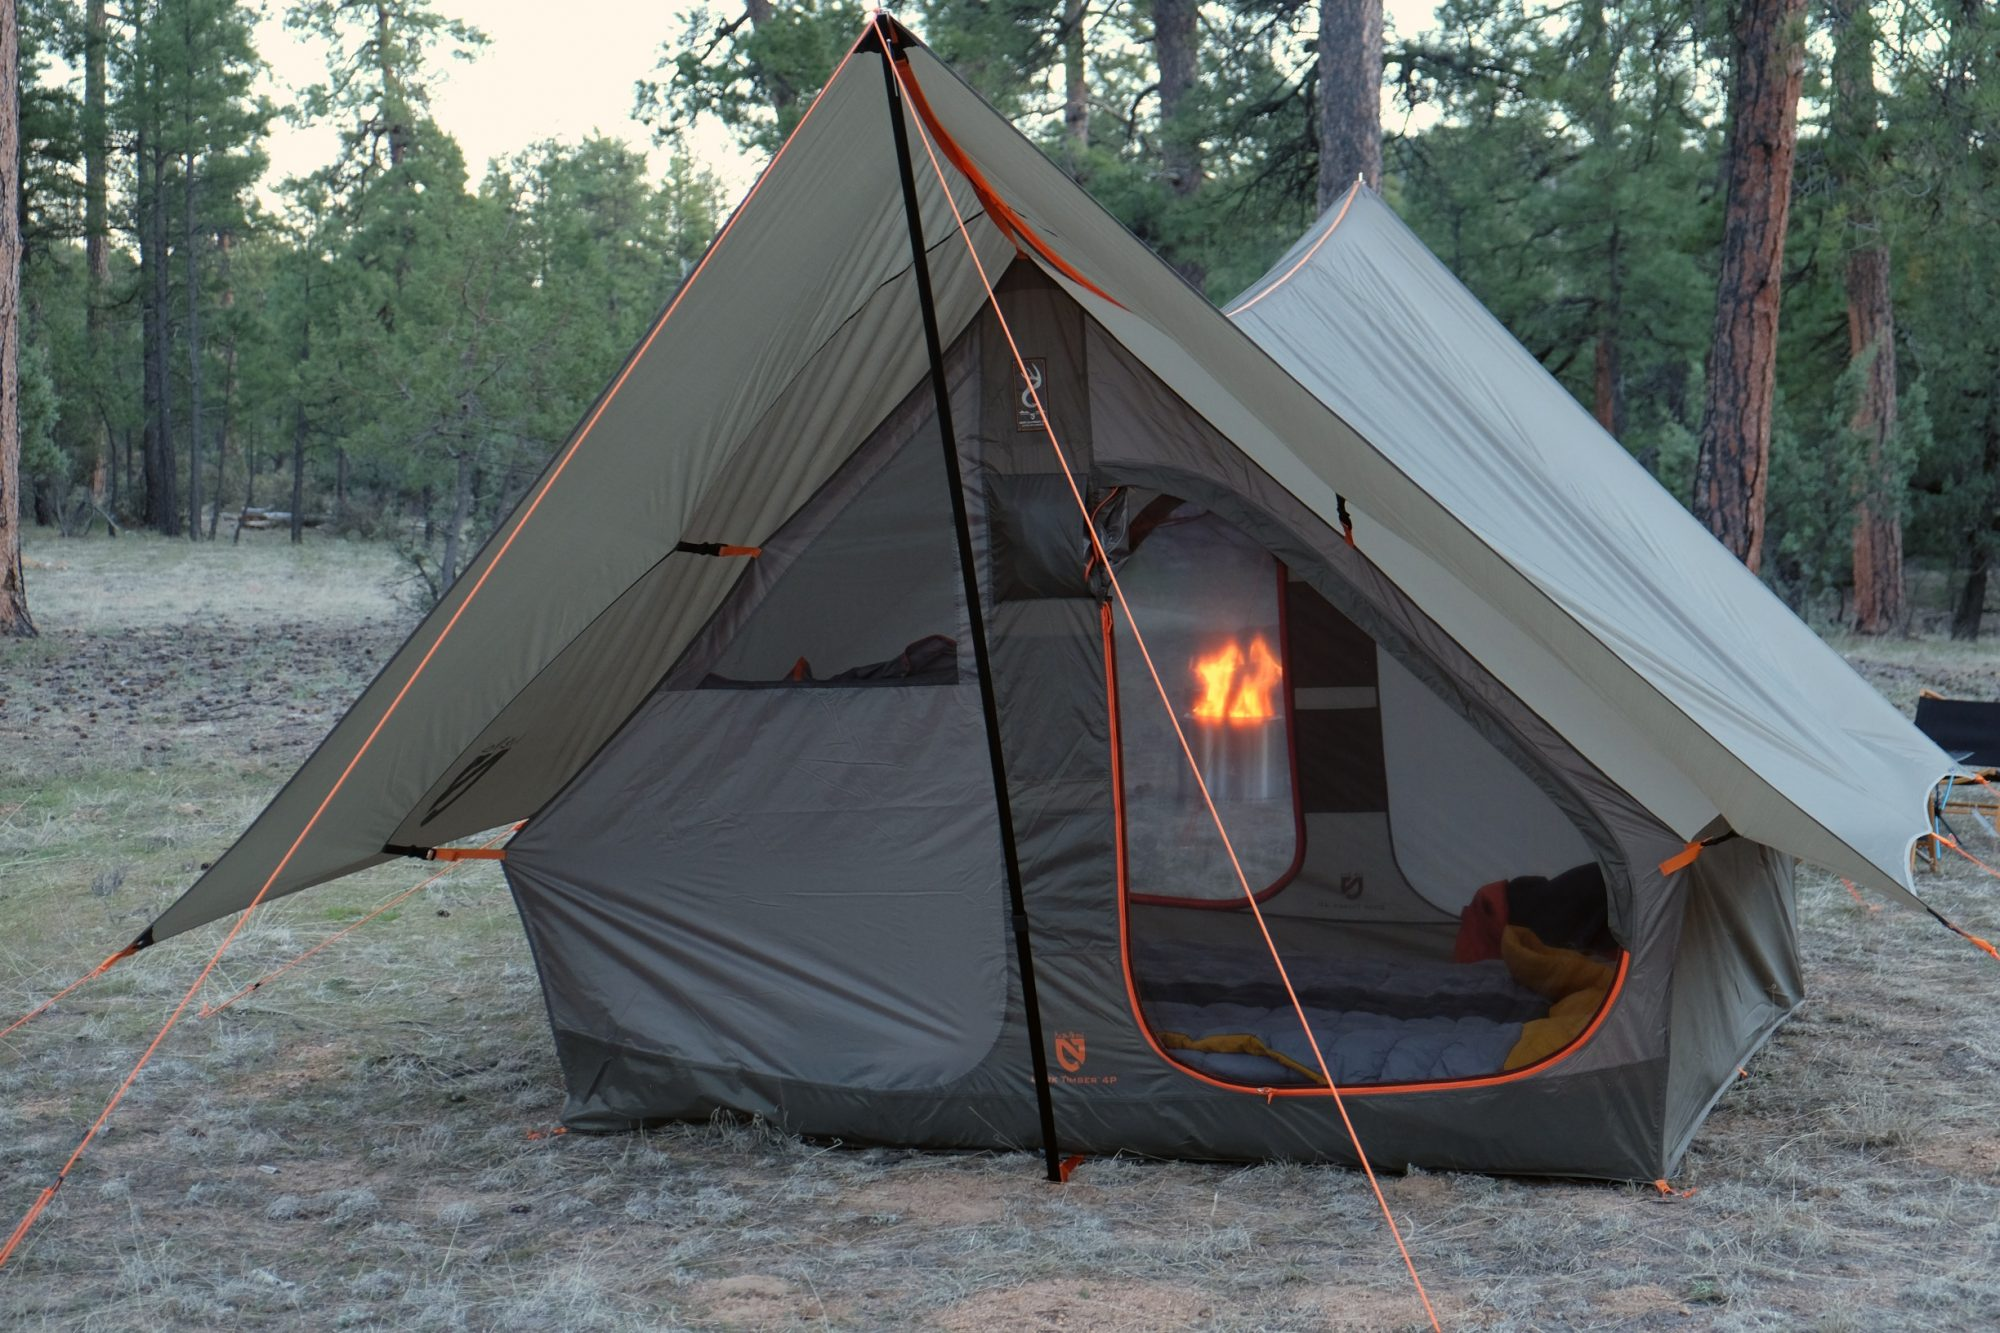 ... thus adding to the convenience of the tent. This is a weighty consideration if like many your nights include sorties into the woods when nature calls. & Head to Head: Roof Top or Ground Tent u2013 Expedition Portal